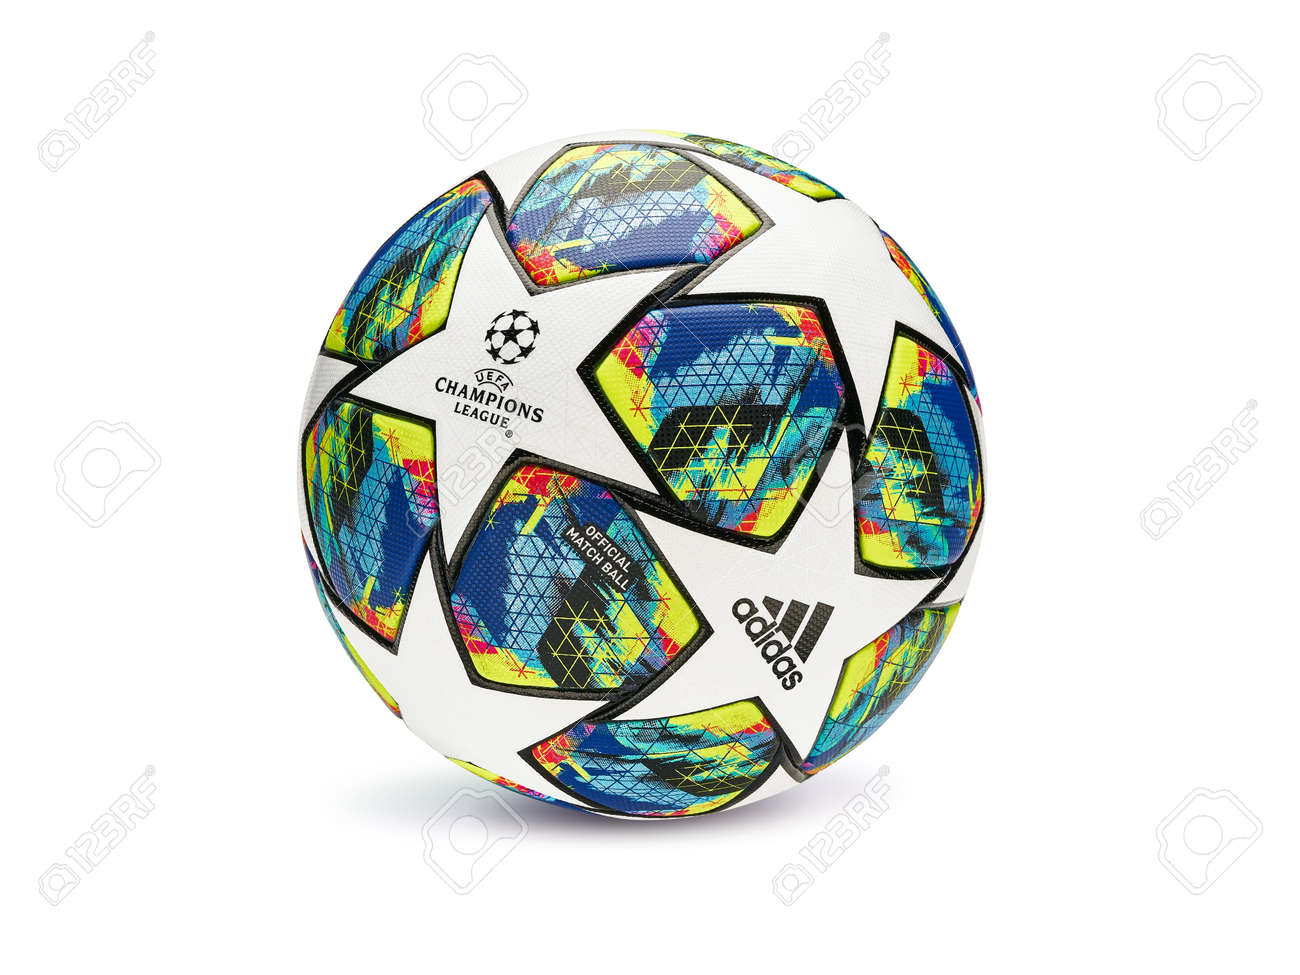 kyiv ukraine august 07 2019 official match ball of uefa champions stock photo picture and royalty free image image 141904078 kyiv ukraine august 07 2019 official match ball of uefa champions